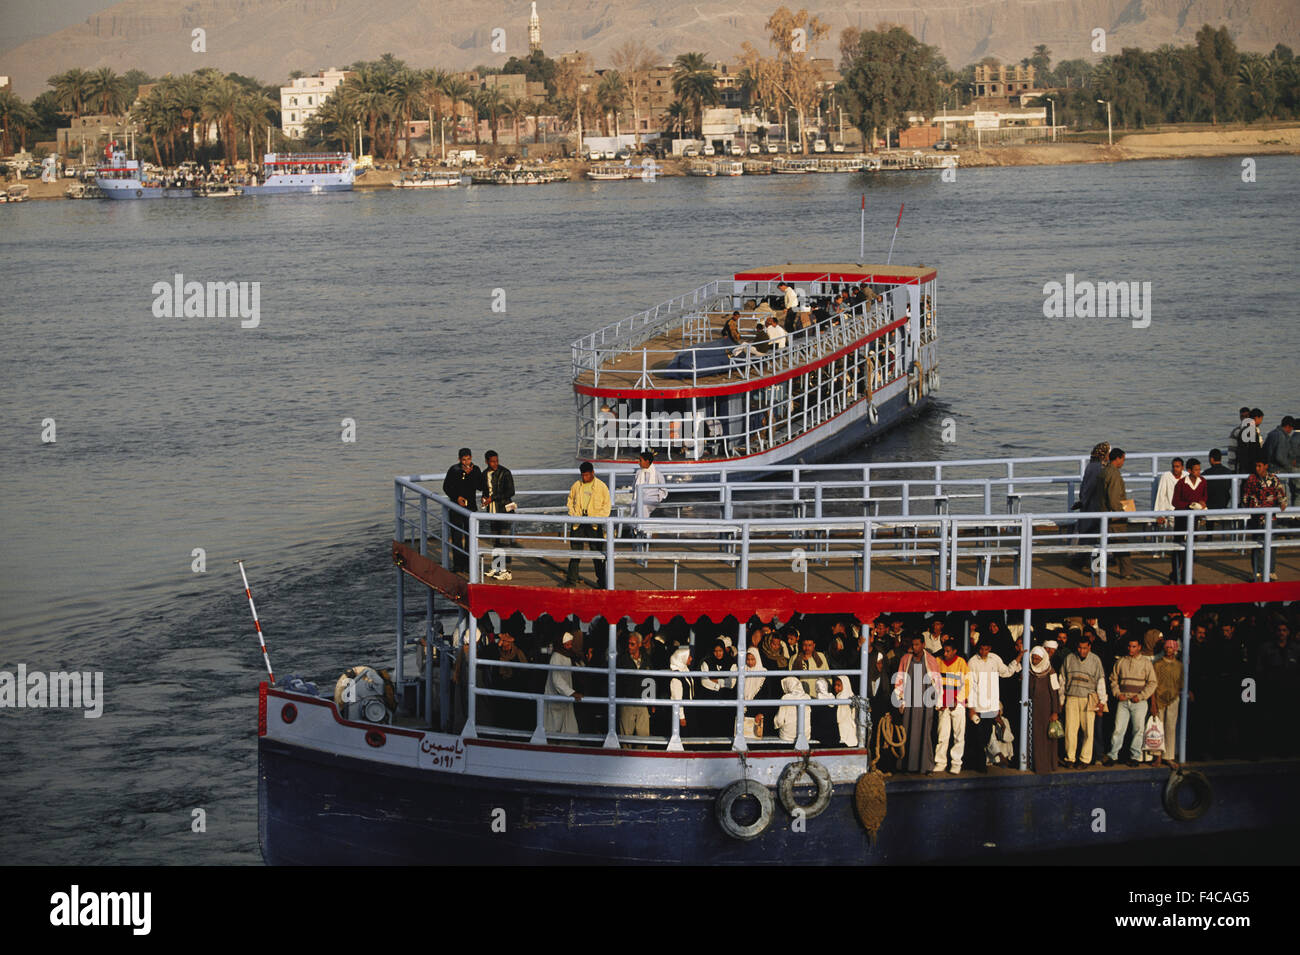 Egypt, Upper Egypt, Luxor, People in ferry boat at Nile River. (Large format sizes available) - Stock Image